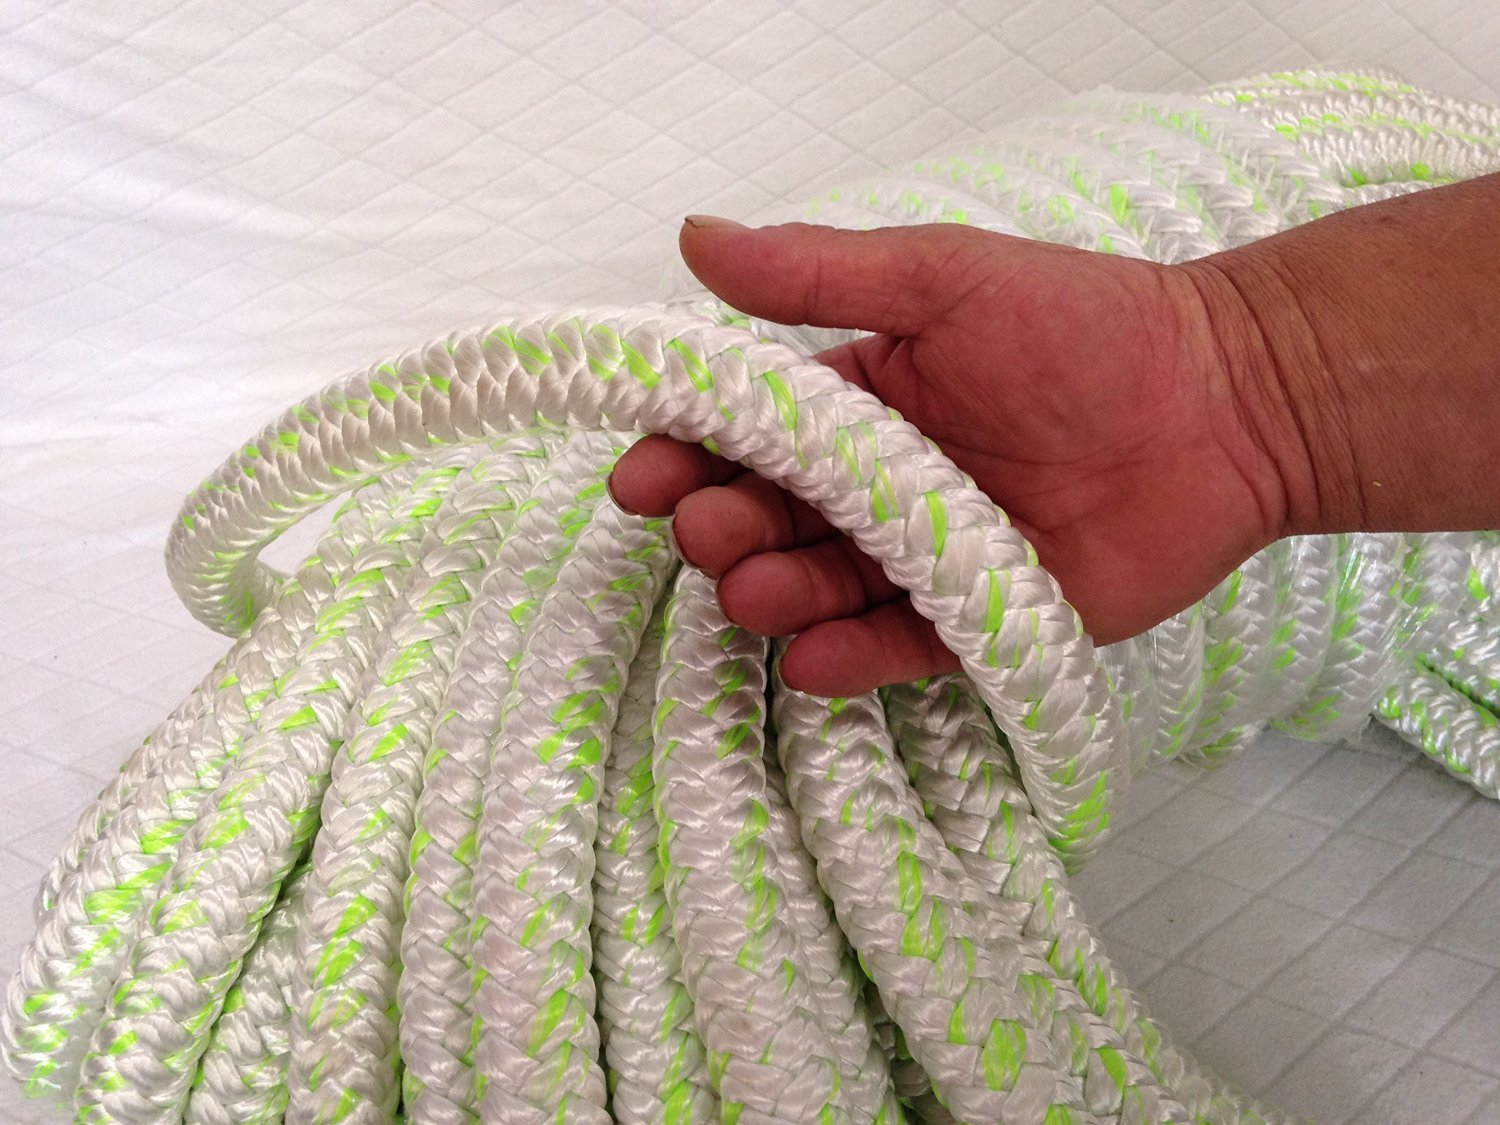 1'' X 100 Feet 12 carrier-24 strand Polyester Arborist Bull Rope, White/Green by Blue Ox Rope (Image #2)